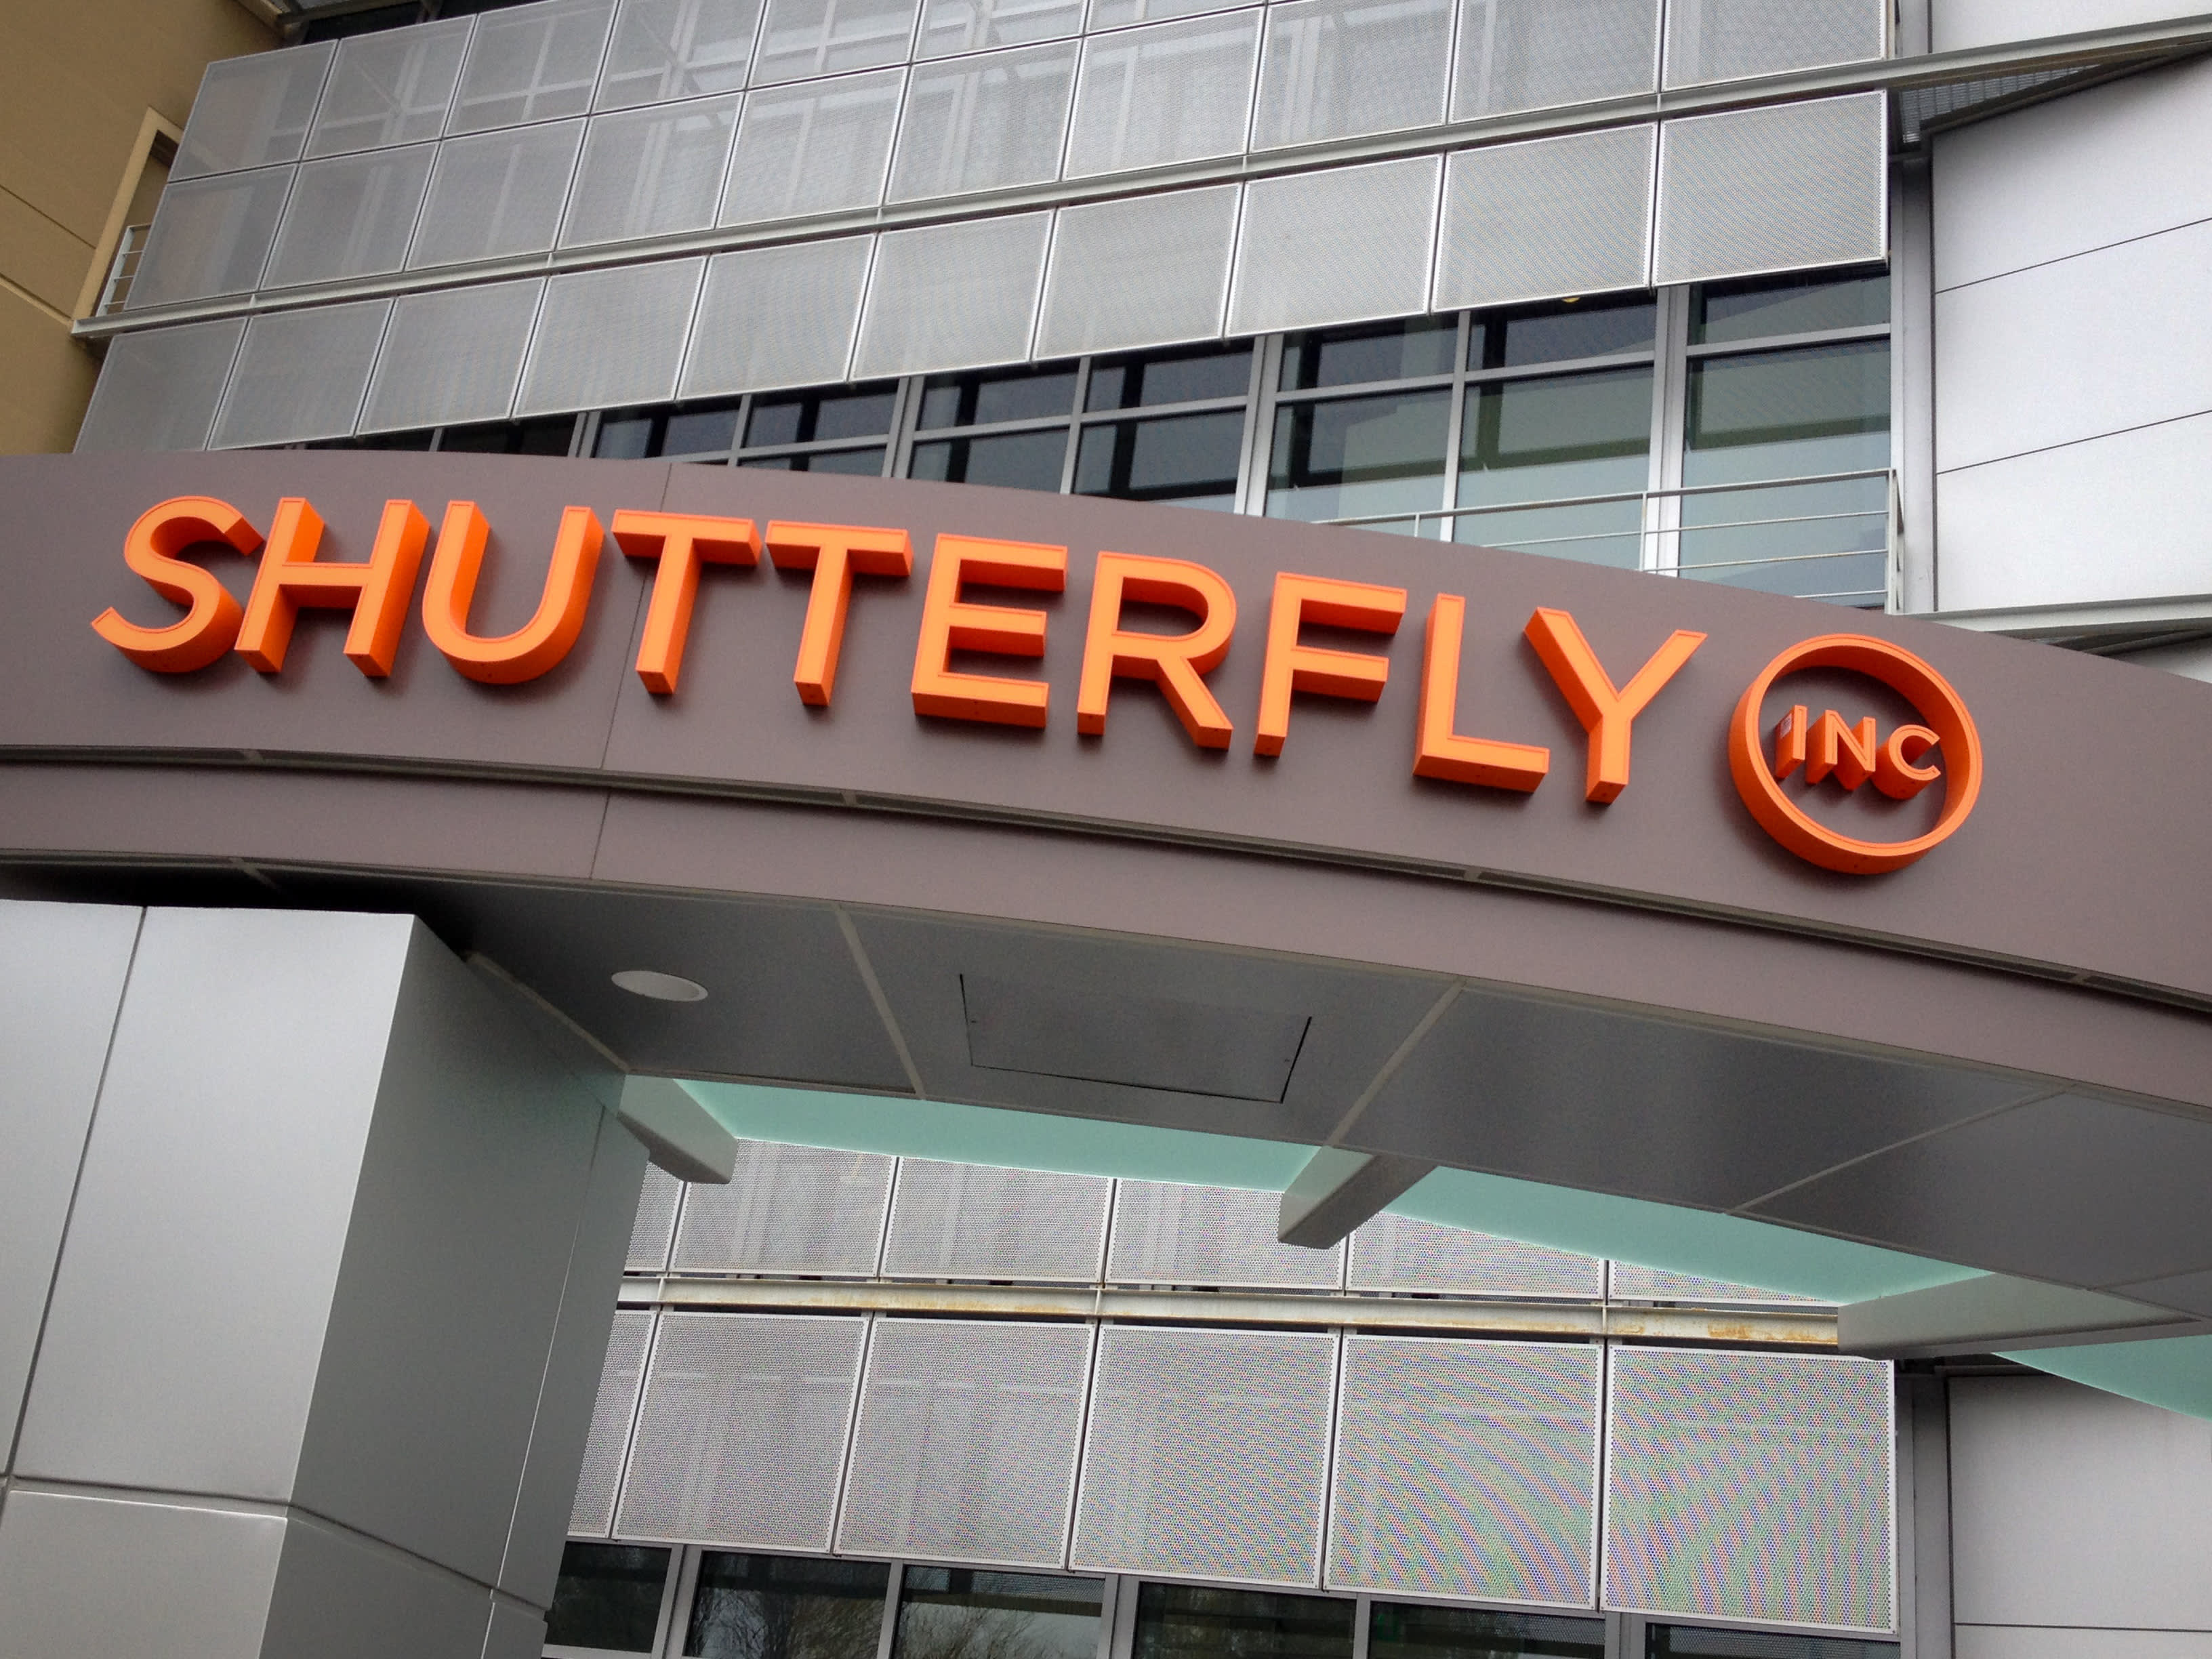 Shutterfly strikes take-private deal with Apollo Global, valuing company at $2.7 billion